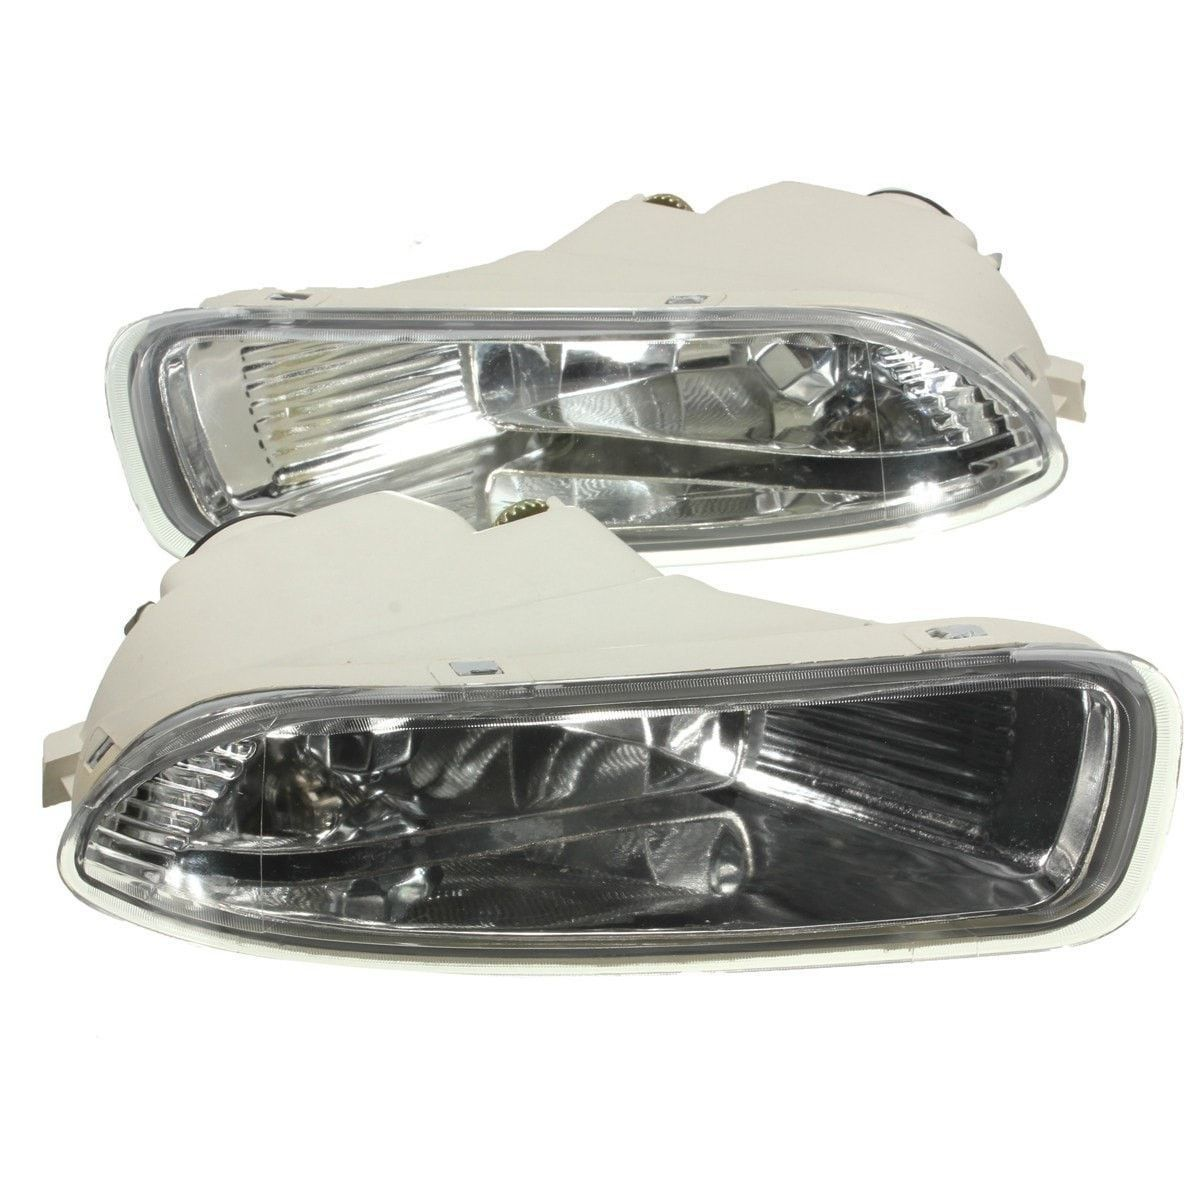 A Pair Car Driving Light Lamps Left & Right Set For Toyota Corolla 2003-2004